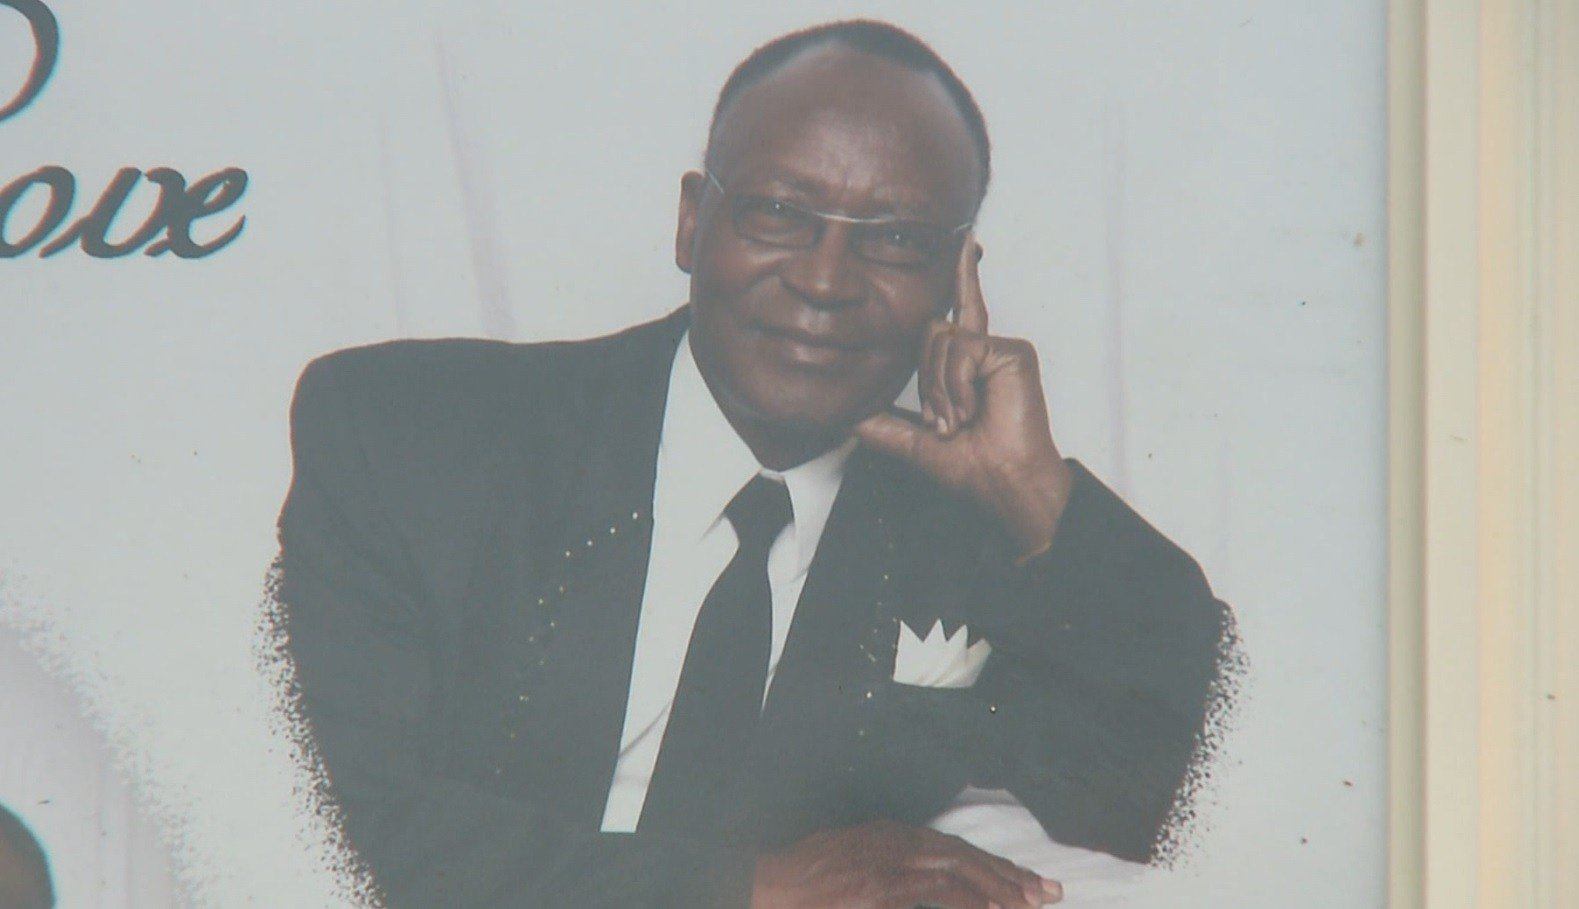 Erick Kimani, 68, was found lying on the pavement of North Highway 67 near Mondoubleau Lane around 8:20 p.m. after being hit by an unknown vehicle. (Family Photo)